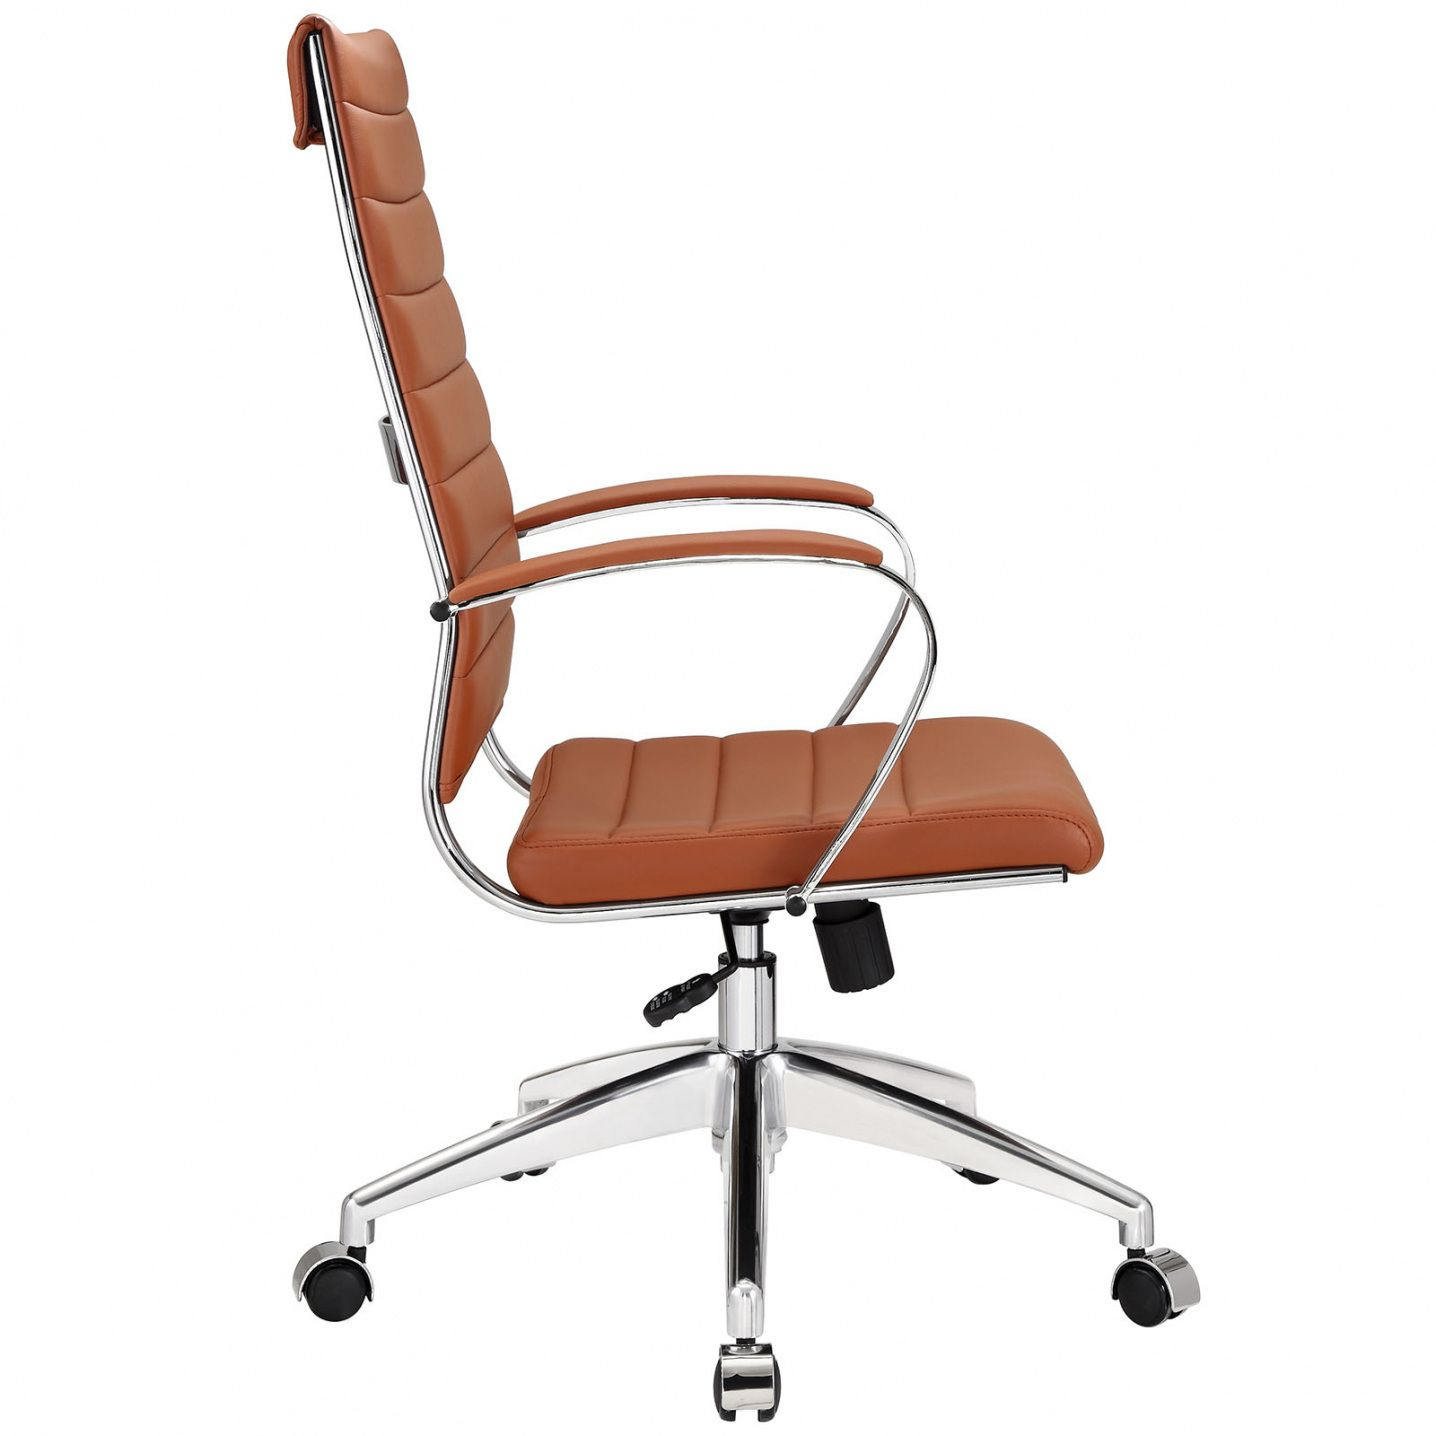 leather office chair modern. Modern Leather Office Chairs - Large Home Furniture Check More At Http:// Chair N